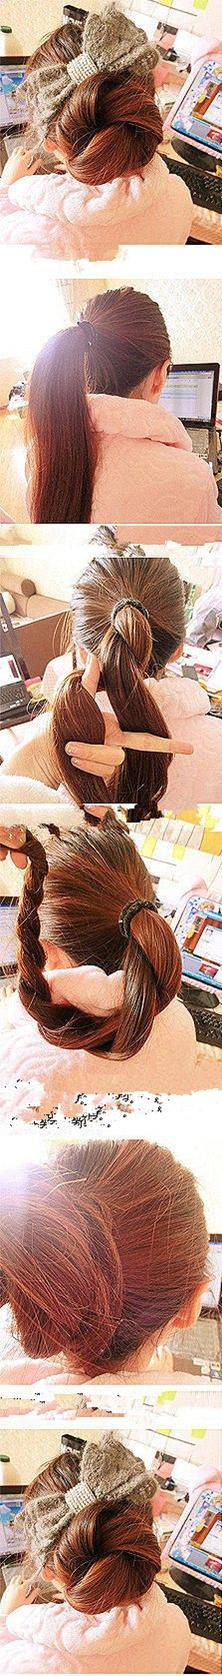 long hair, hair beauty, longer hair, sock bun, burlap bows, hairstyl, twist bun, big bows, hair buns